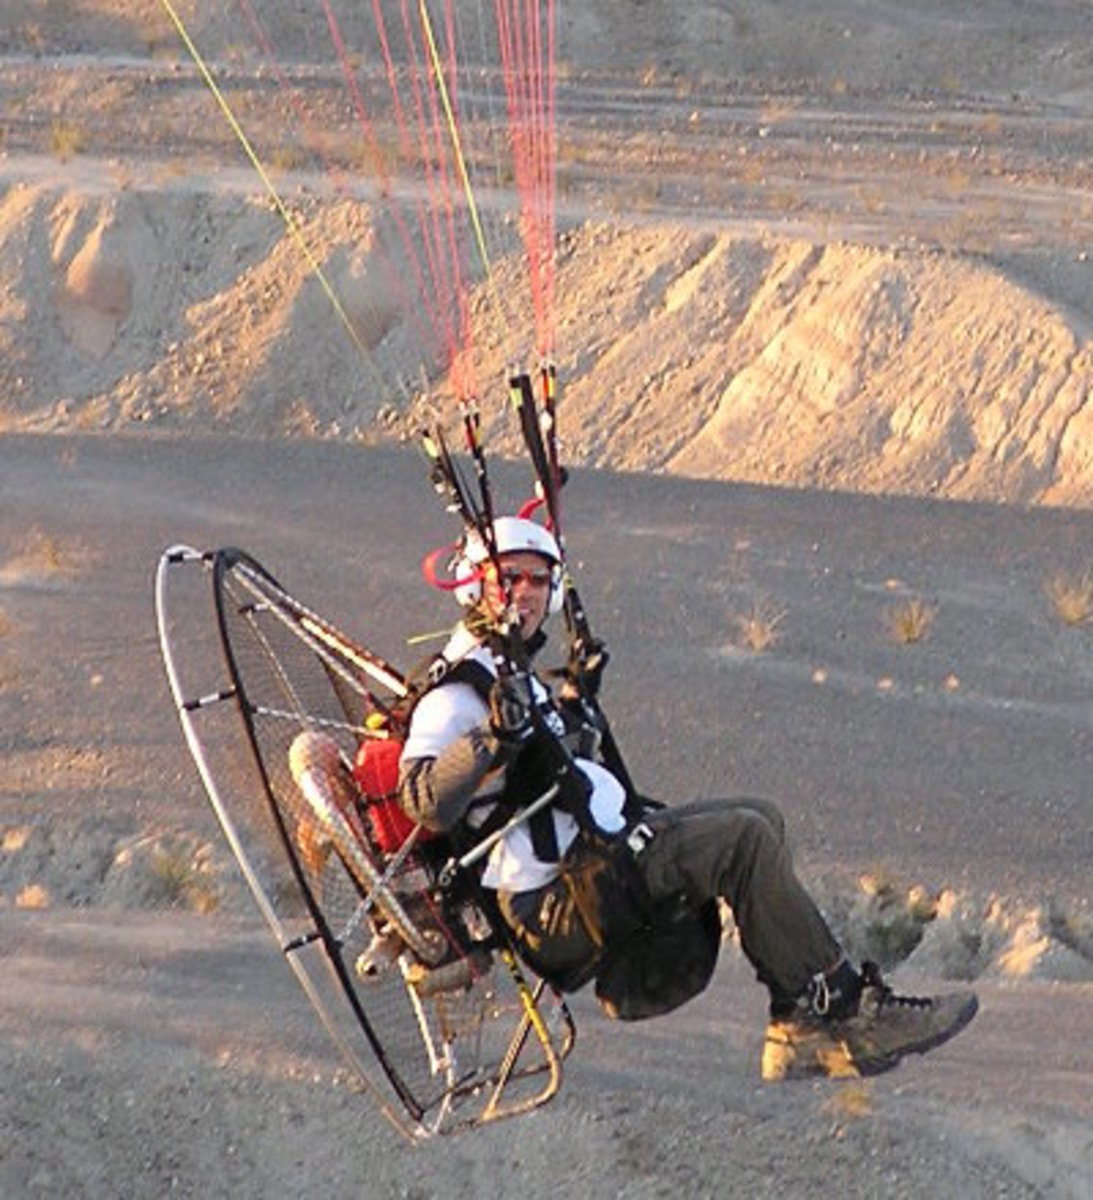 This is how the paramotors look like.  A parachute holds the whole motor and person from above.